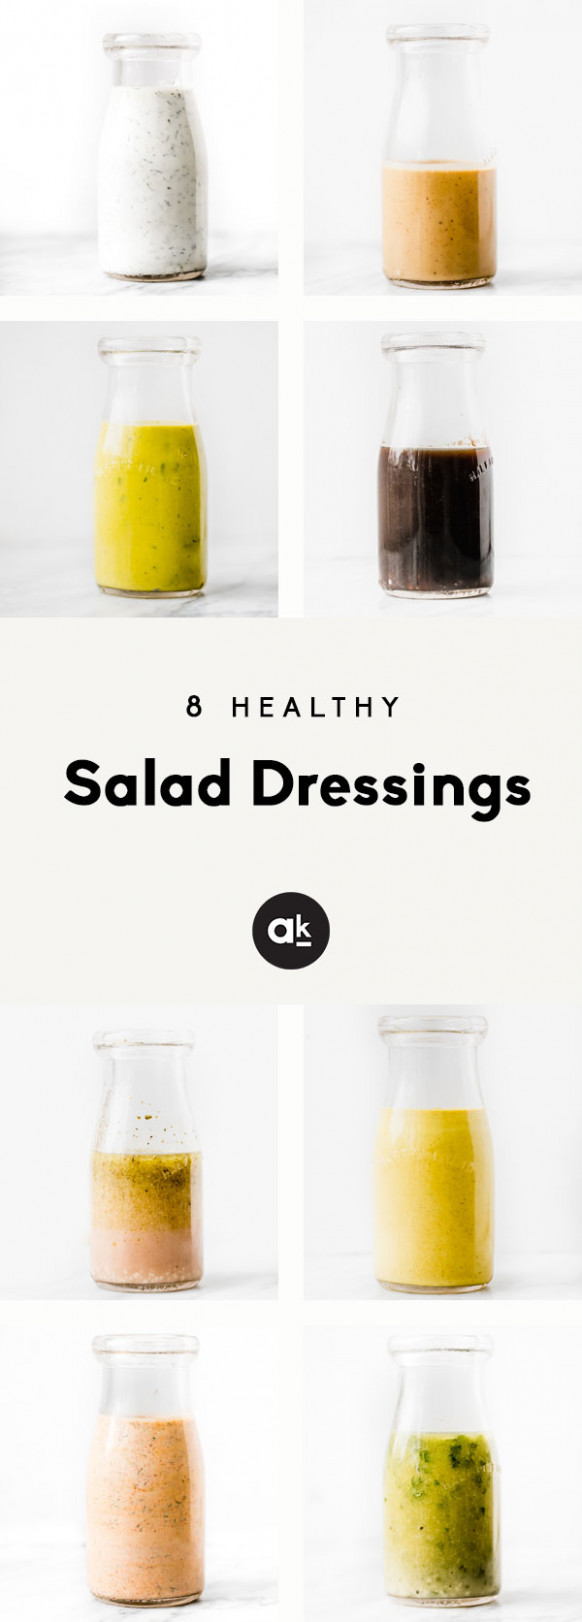 8 Homemade Healthy Salad Dressings | Ambitious Kitchen